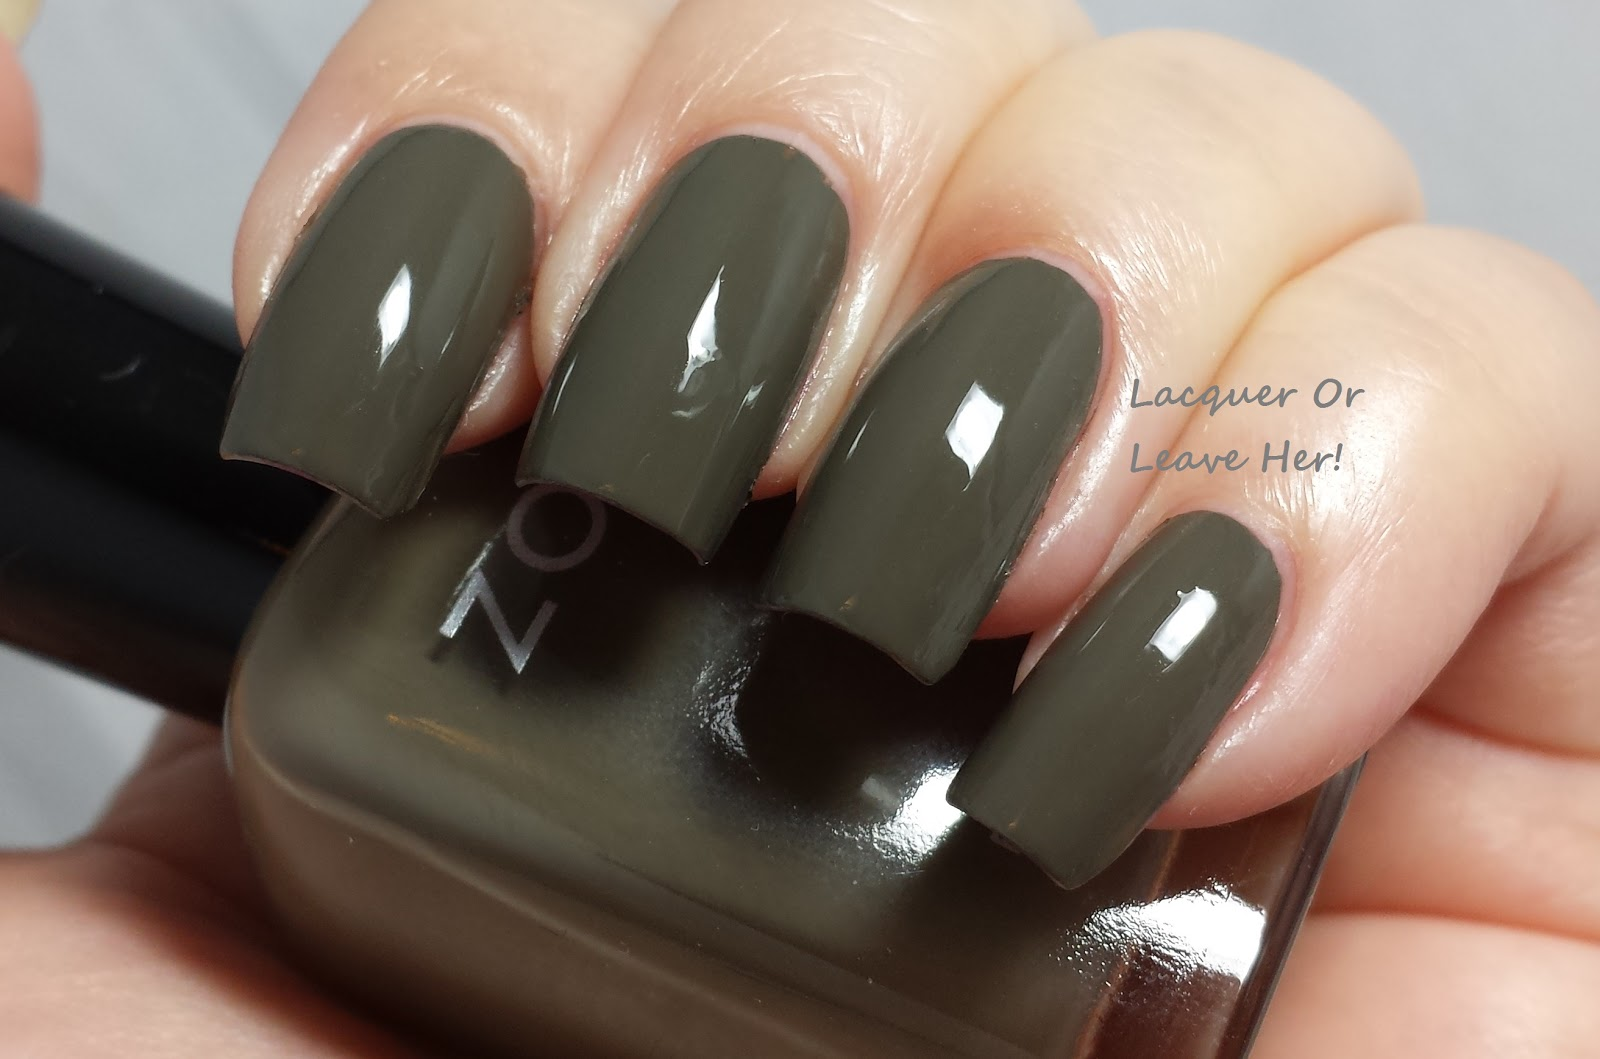 Lacquer or leave her review zoya fall 2015 focus collection zoya charli reheart Choice Image